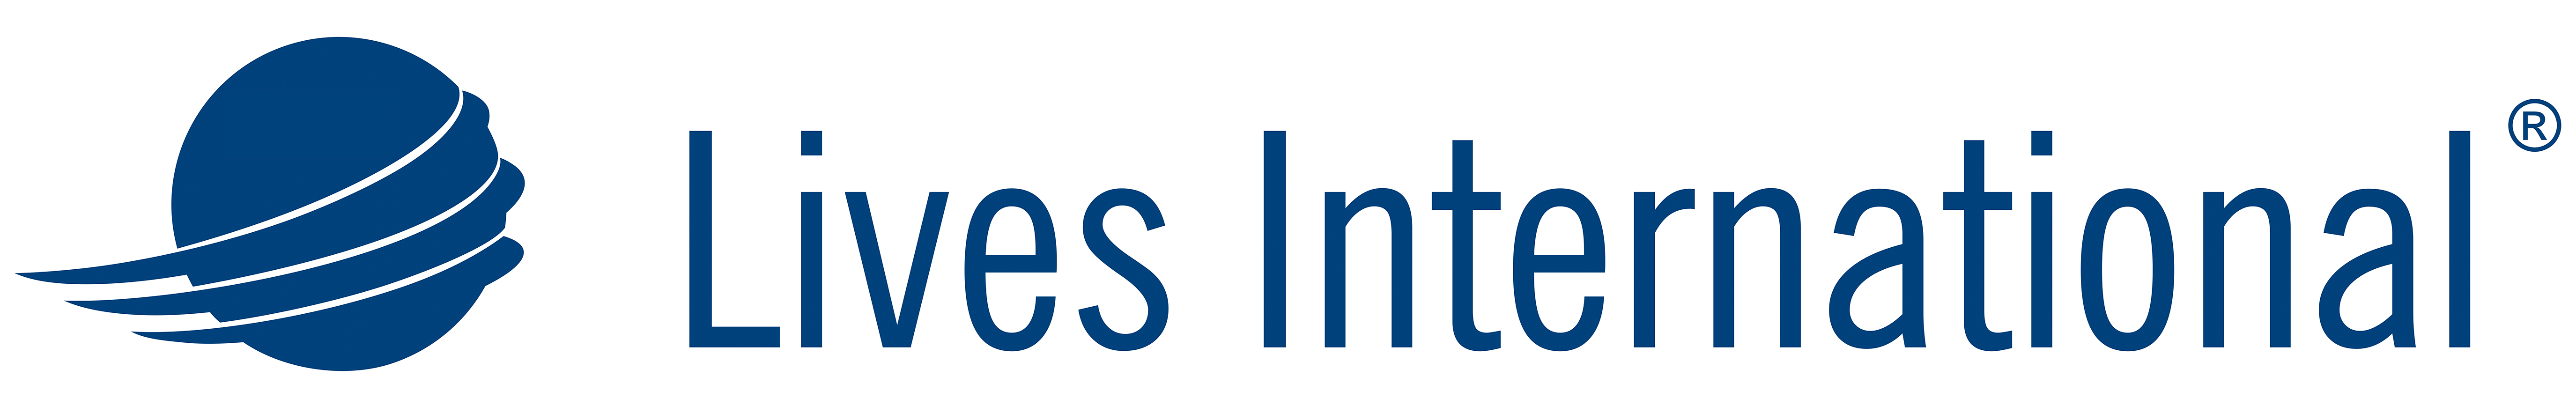 Lives International Logo